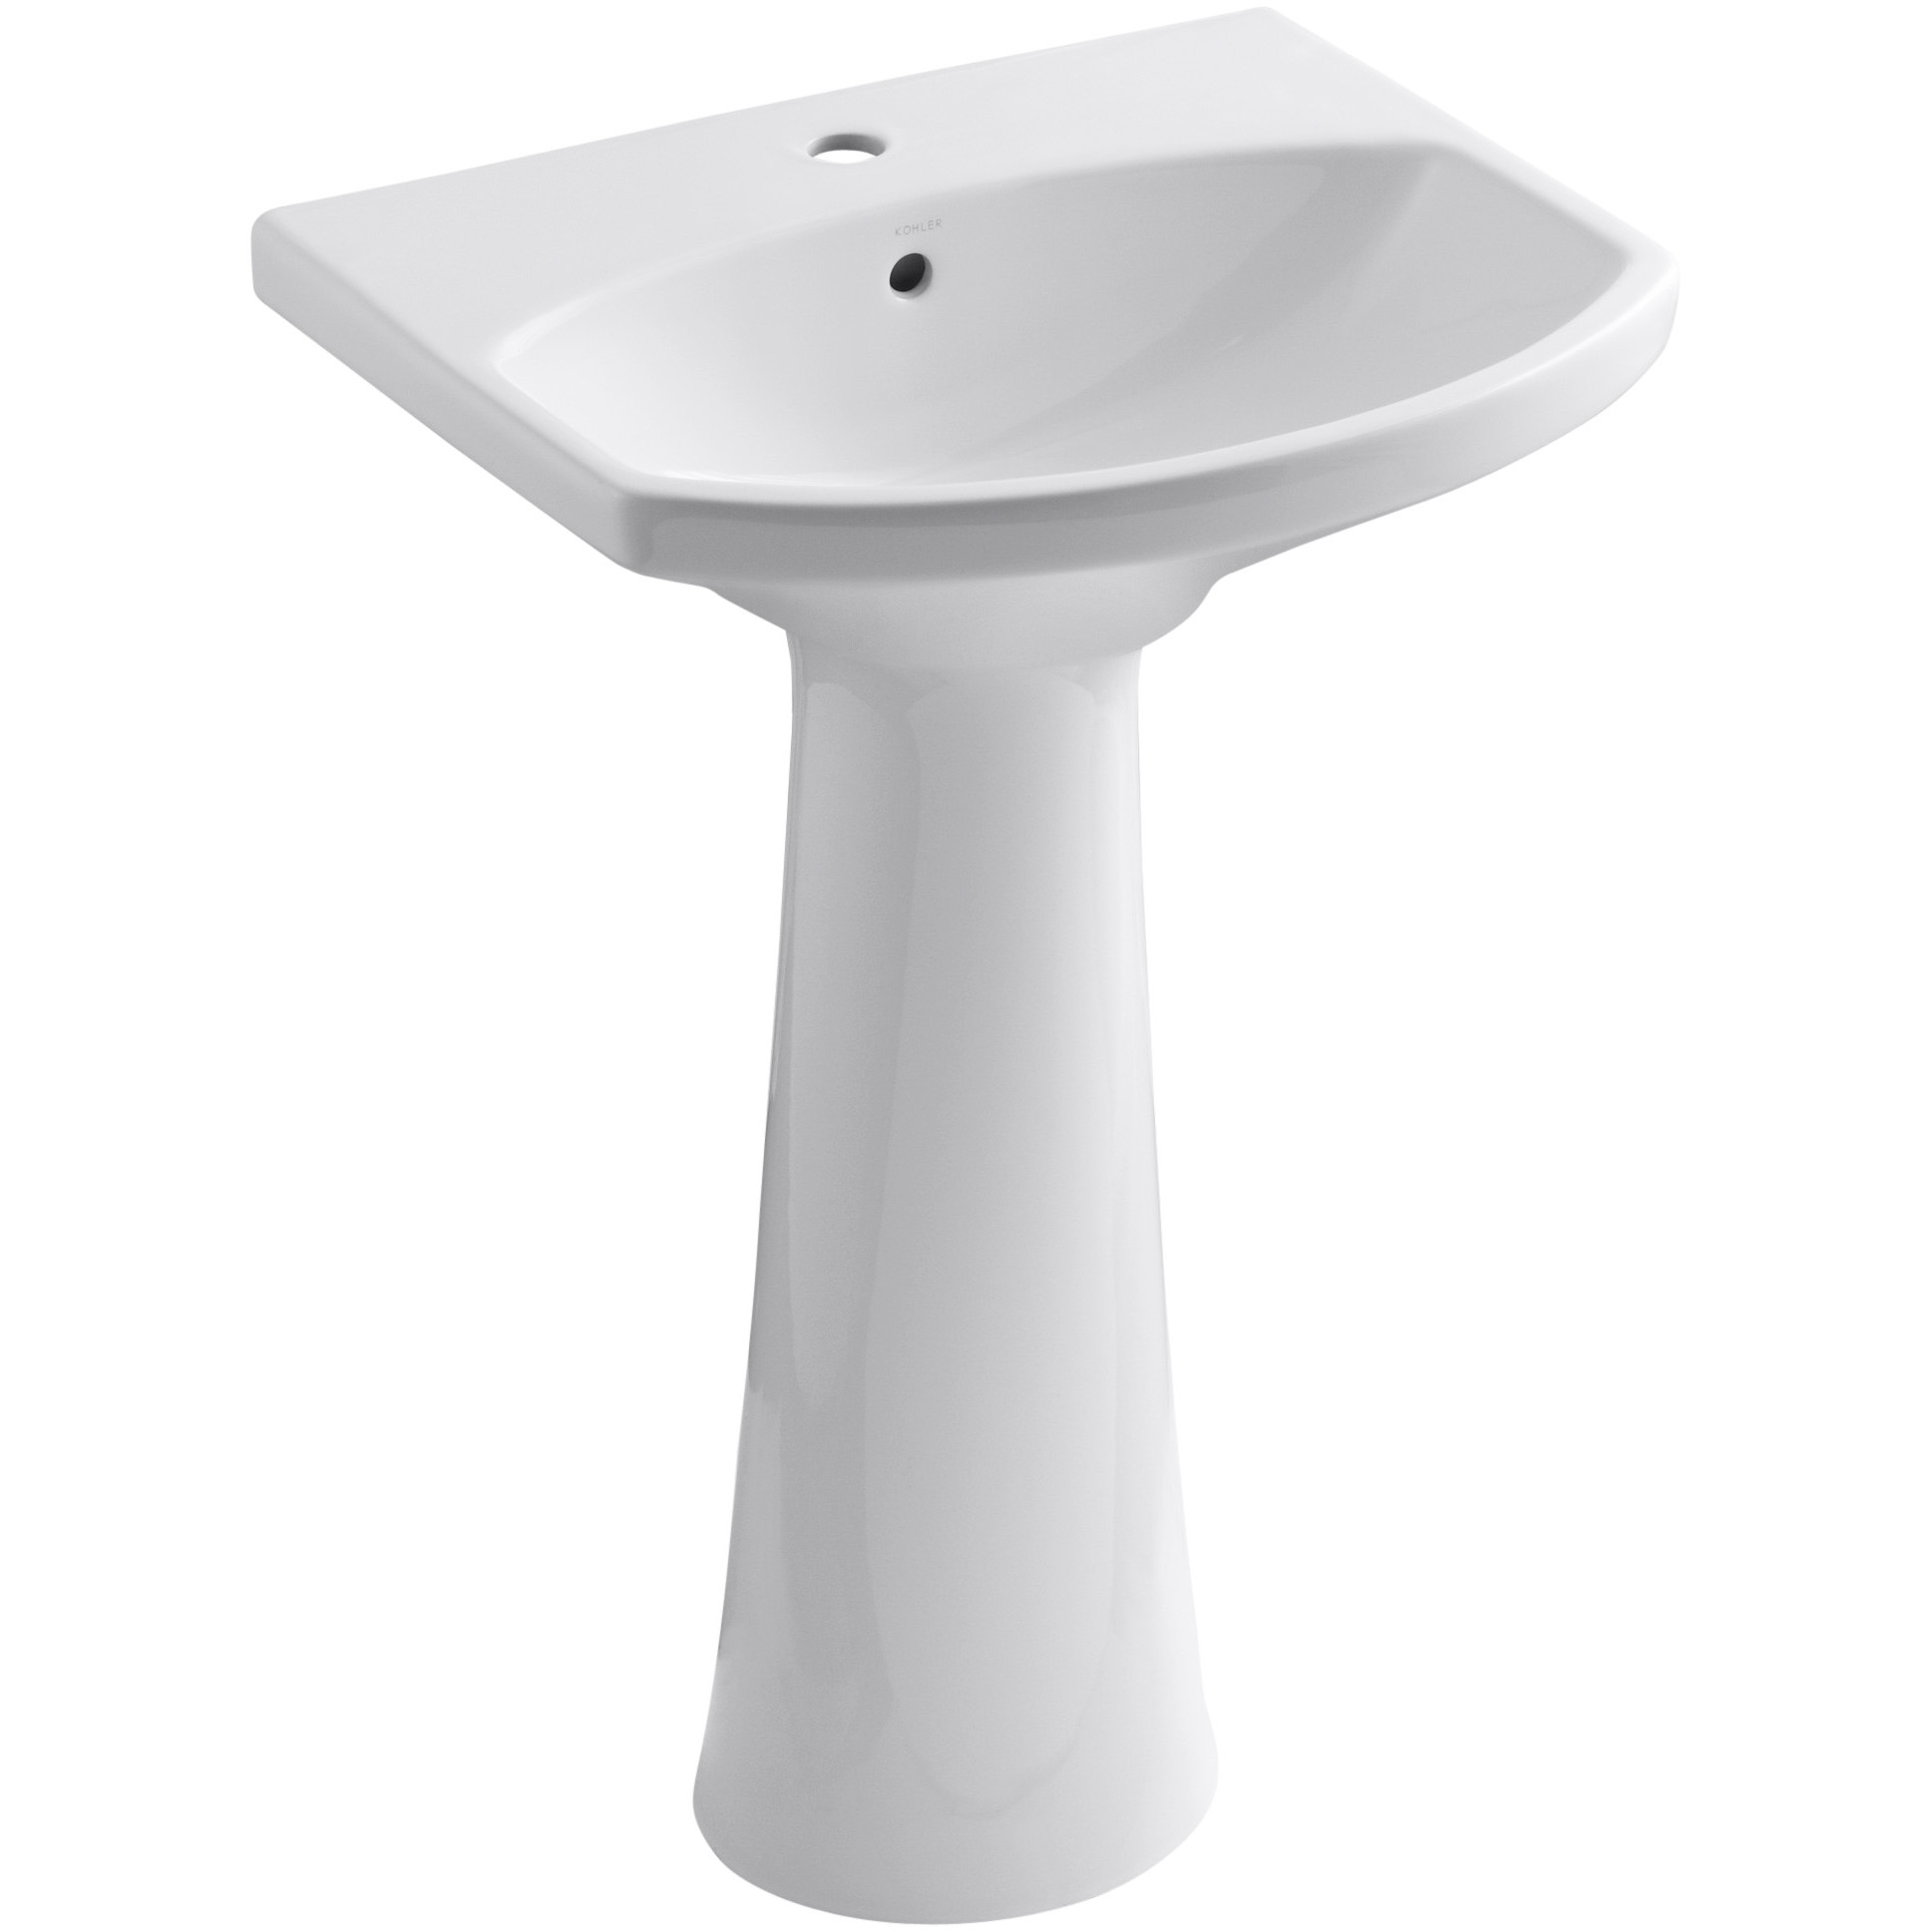 Bathroom Design: Captivating Mirabelle Sinks With Single Faucet Hole ...